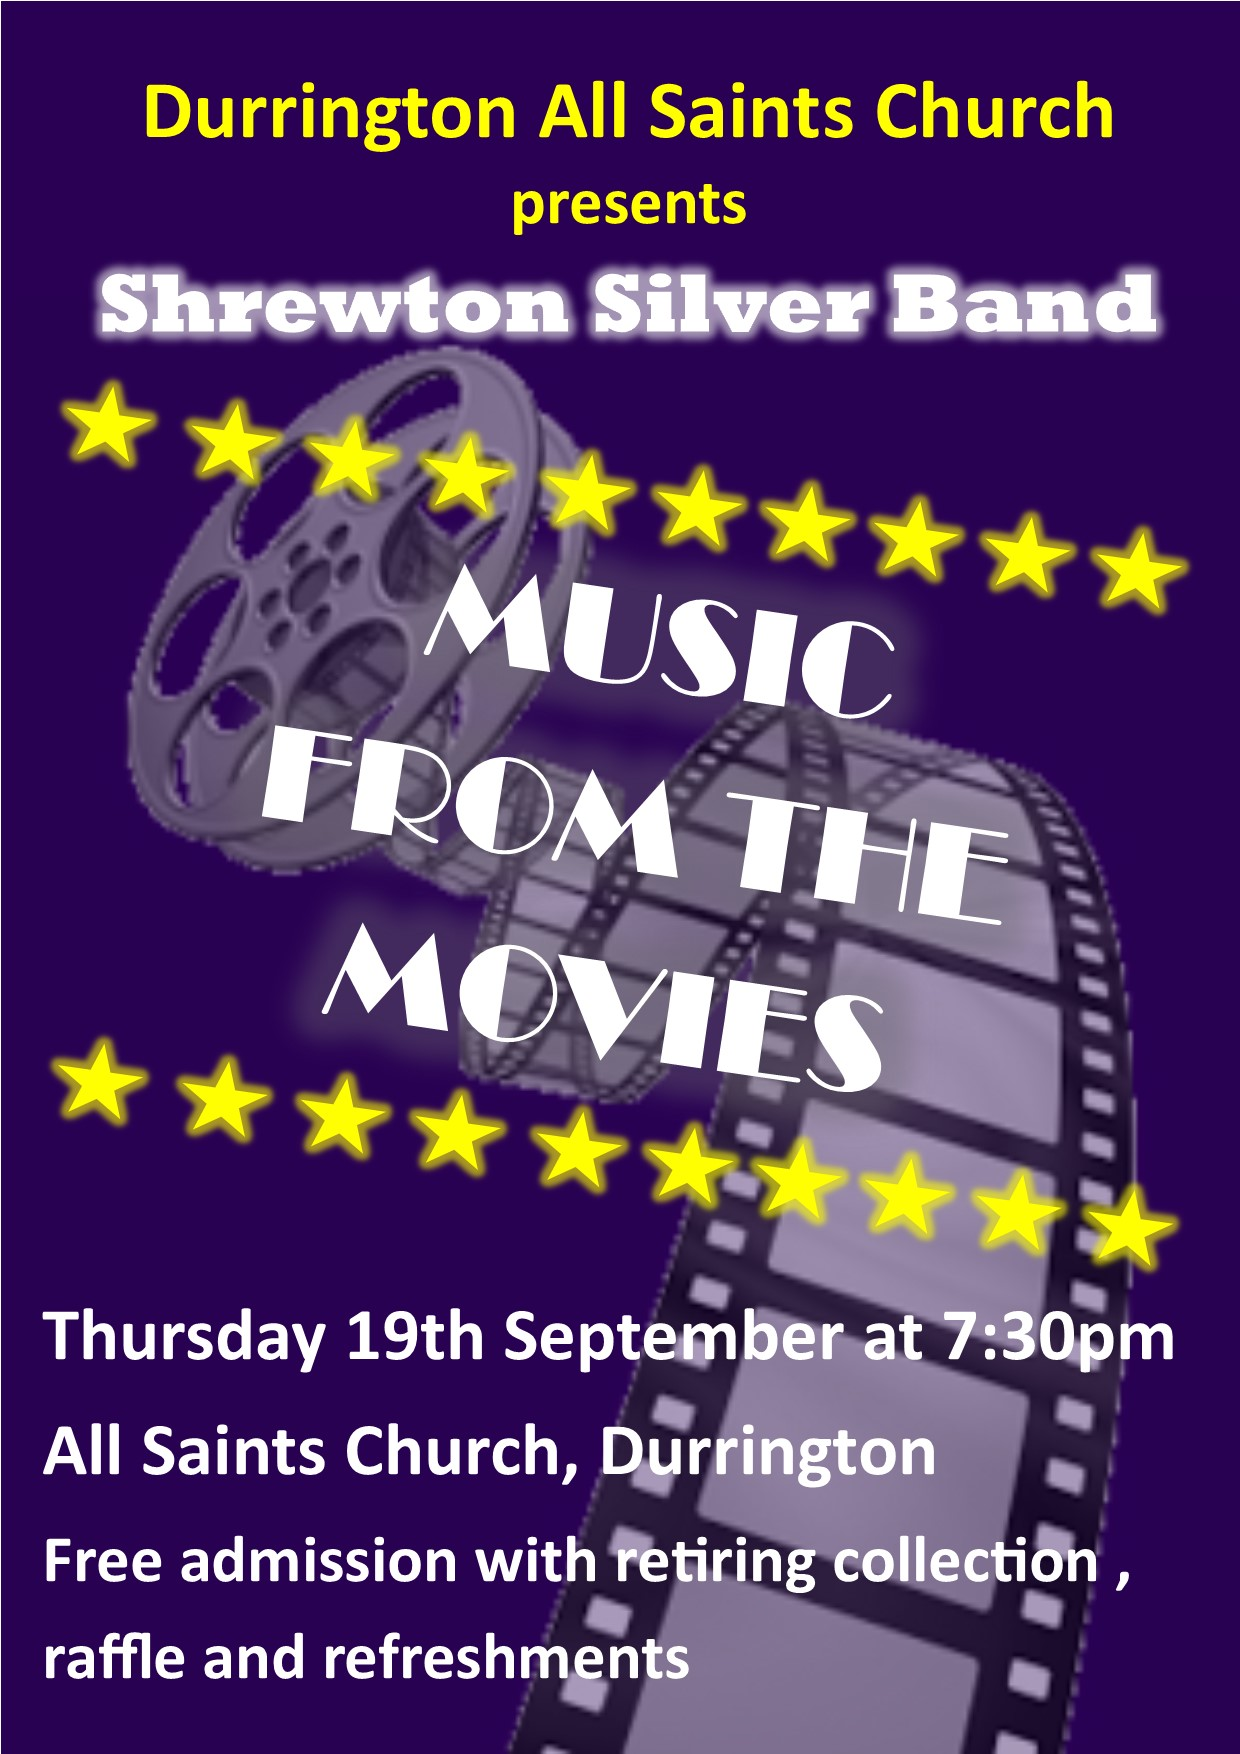 Shrewton Silver Band featuring music from the movies